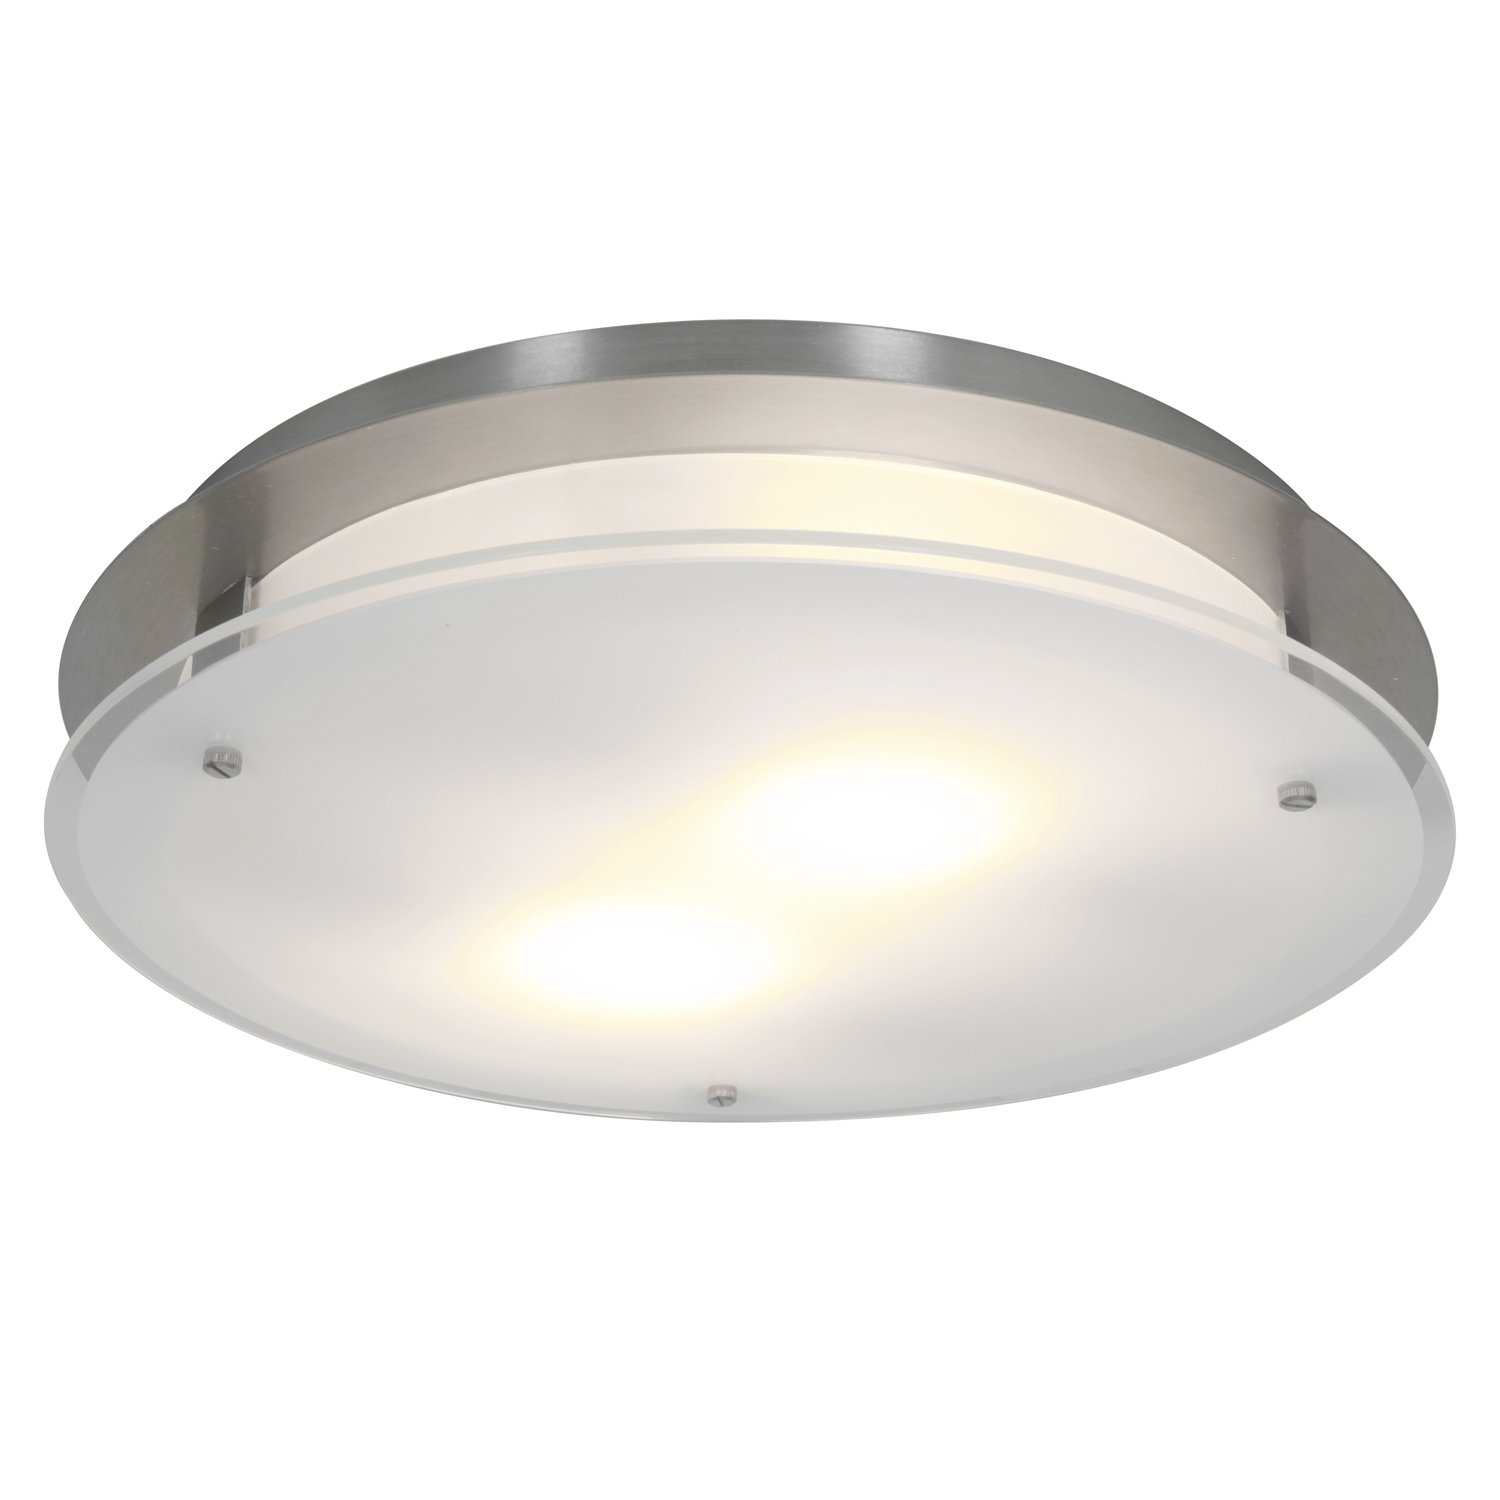 Access Lighting 50038LEDD-BS/FST Vision Round LED Light 16-Inch Diameter Flush Mount with Frosted Glass Shade, Brushed Steel Finish